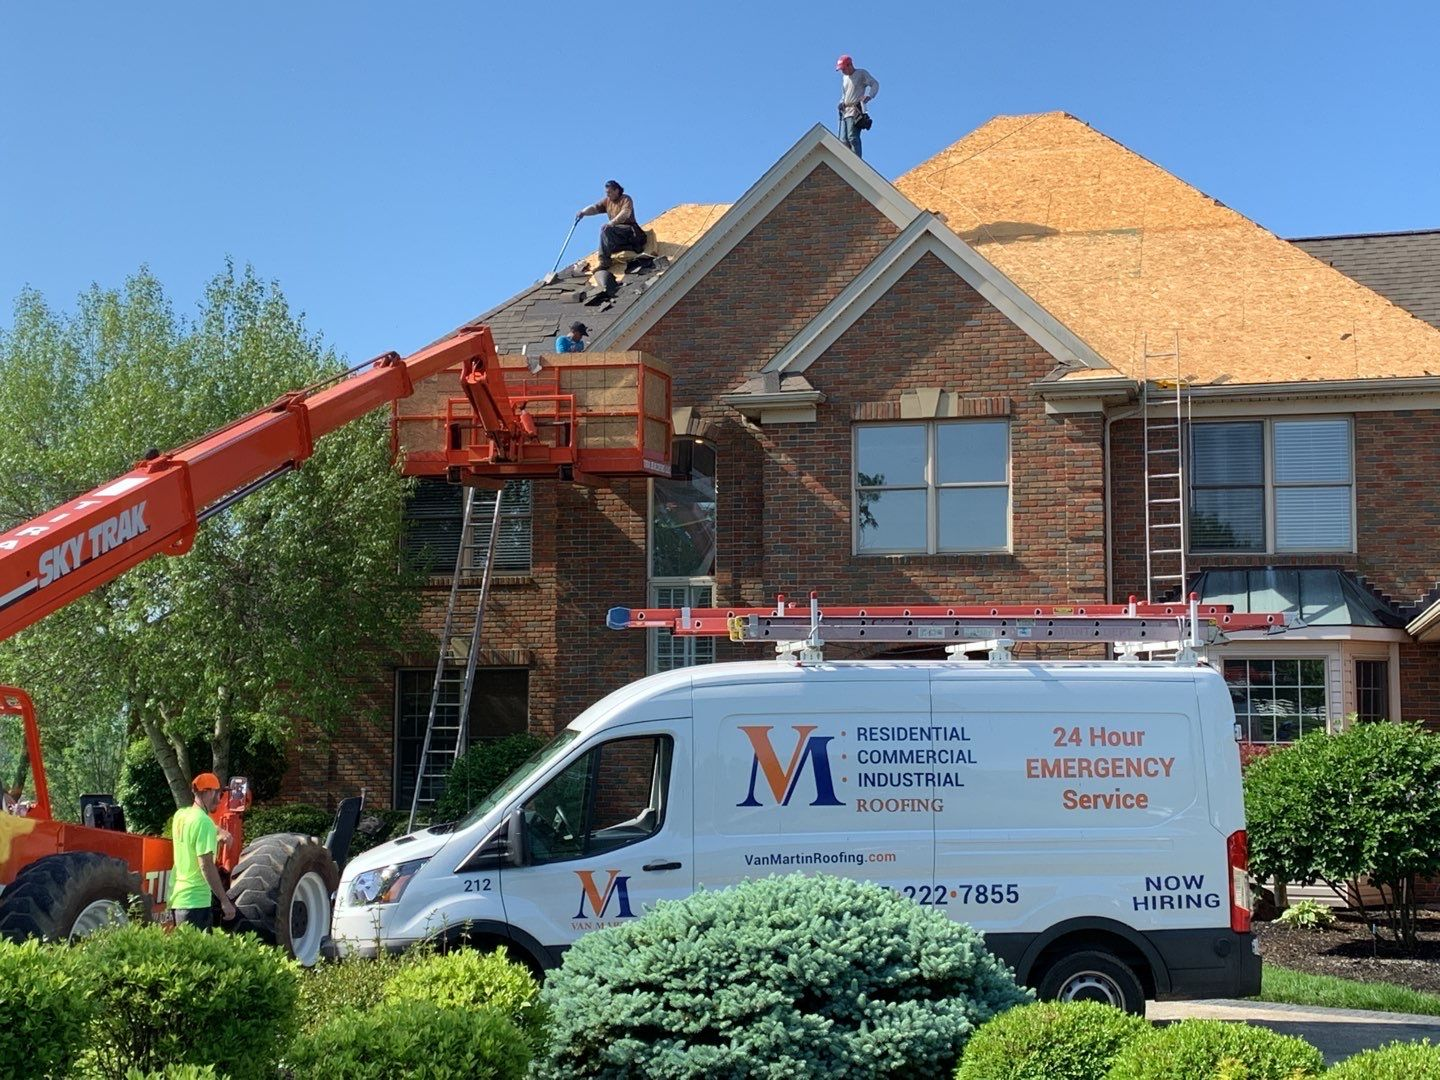 roofing contractors Dayton Ohio, roof replacement, metal roofing